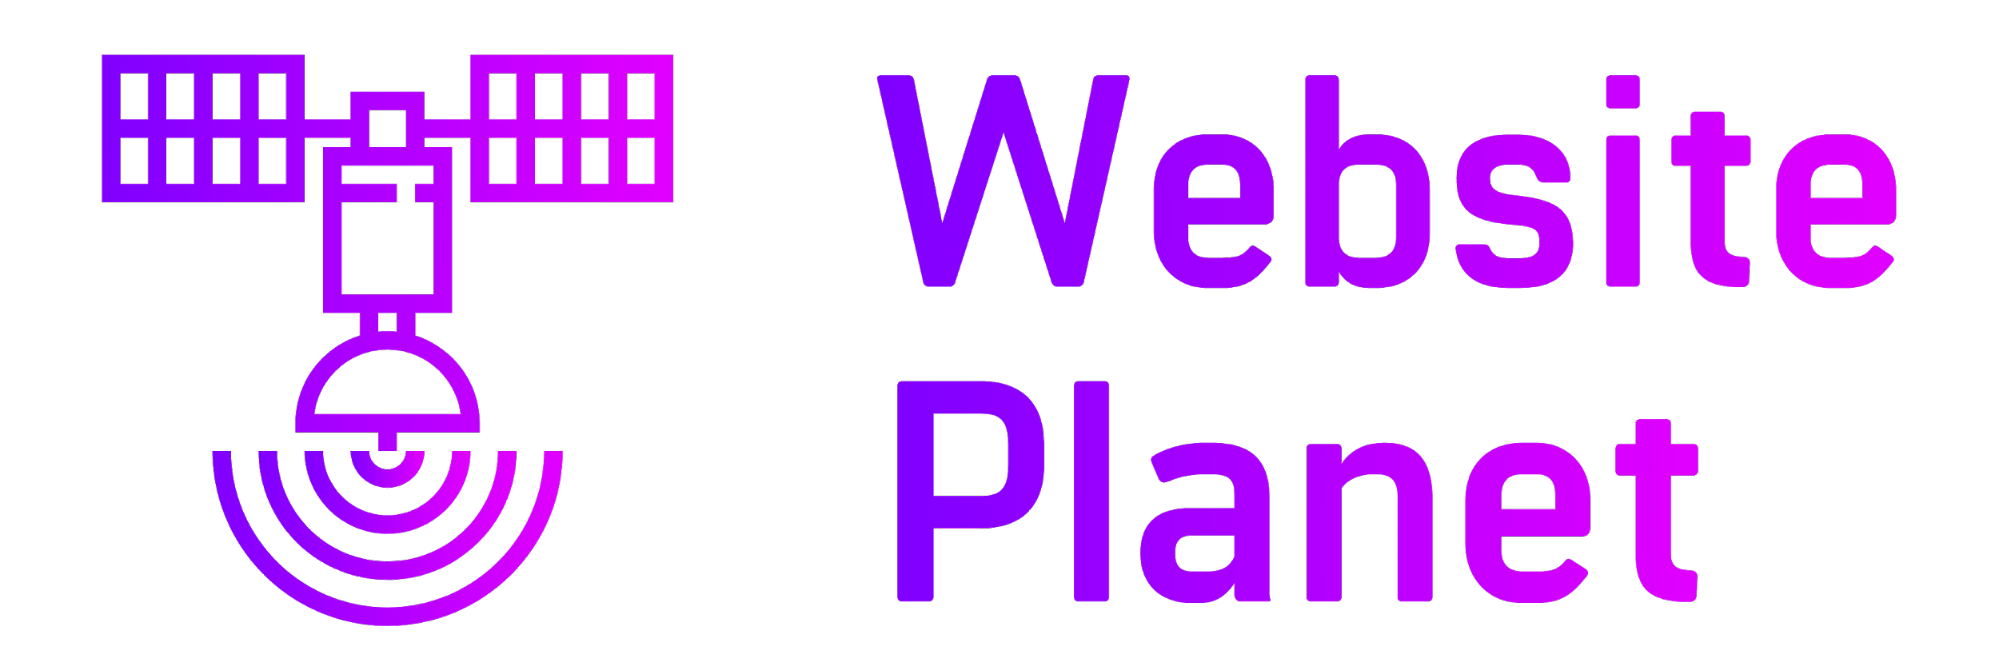 Website Planet logo made with Looka